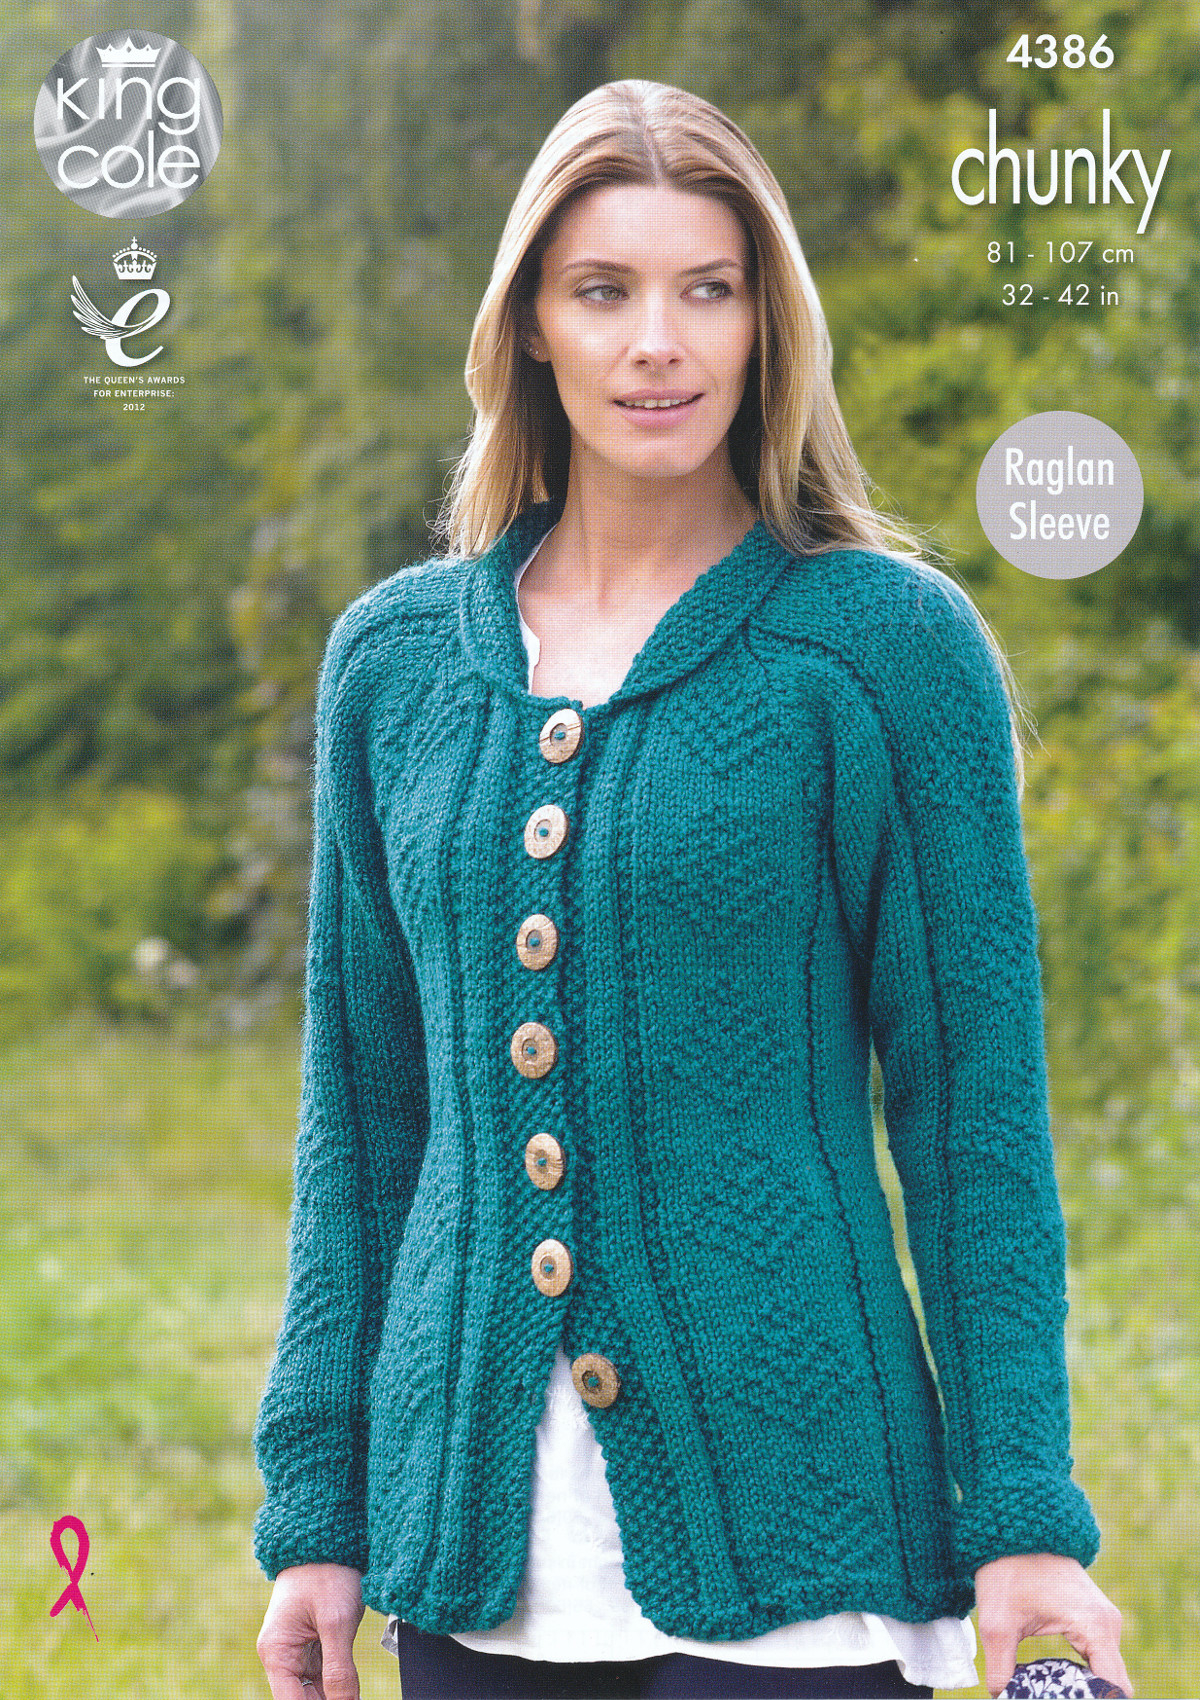 Knitting Patterns For Women Details About King Cole Ladies Chunky Knitting Pattern Womens Raglan Sleeve Coat Cardigan 4386